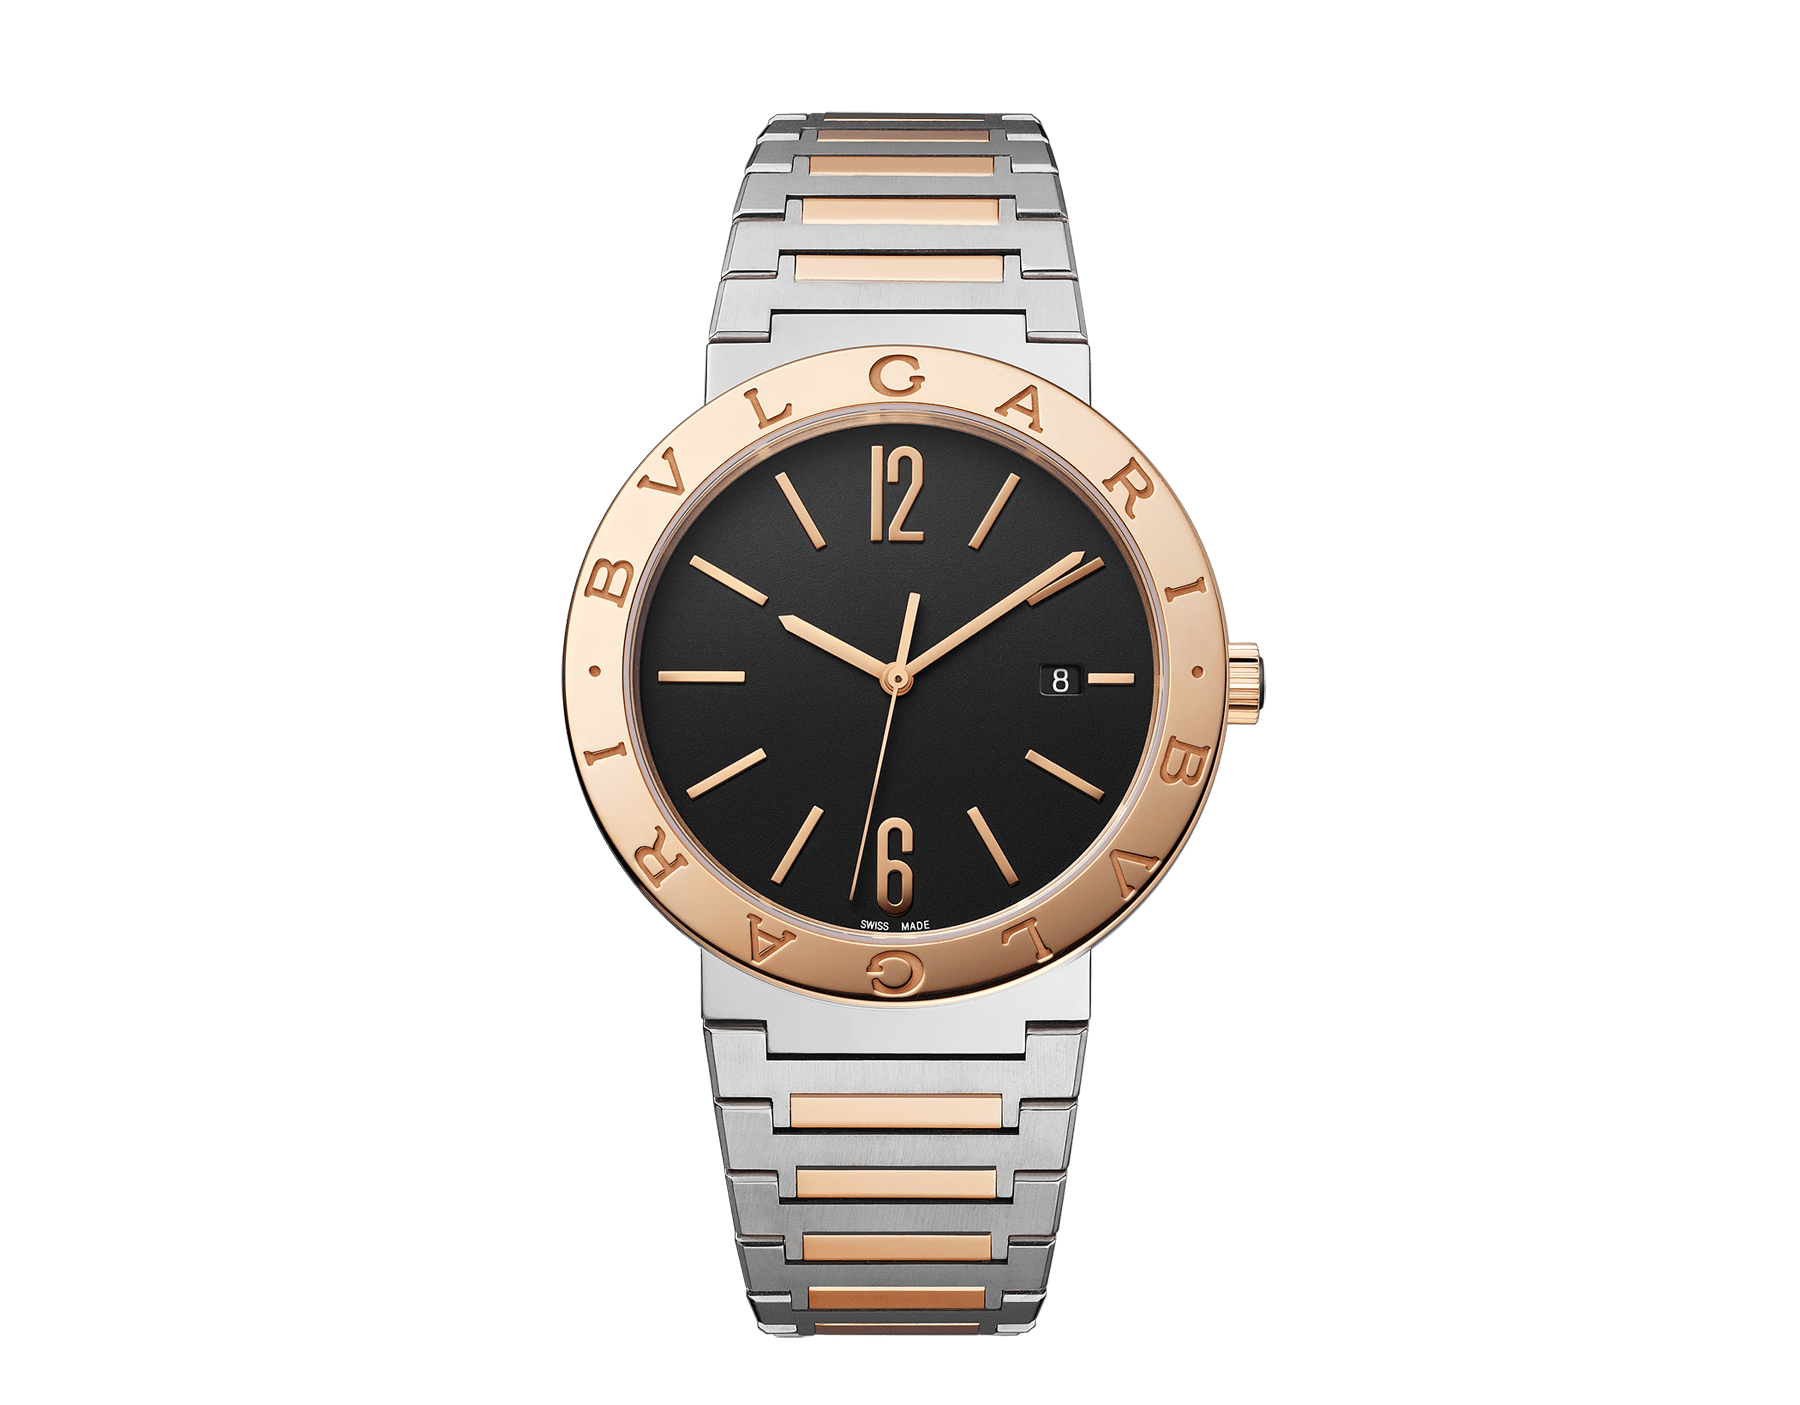 BVLGARI BVLGARI Solotempo watch with mechanical manufacture movement, automatic winding and date, stainless steel case, 18 kt rose gold bezel engraved with double logo, black dial and 18 kt rose gold and stainless steel bracelet 102930 image 1